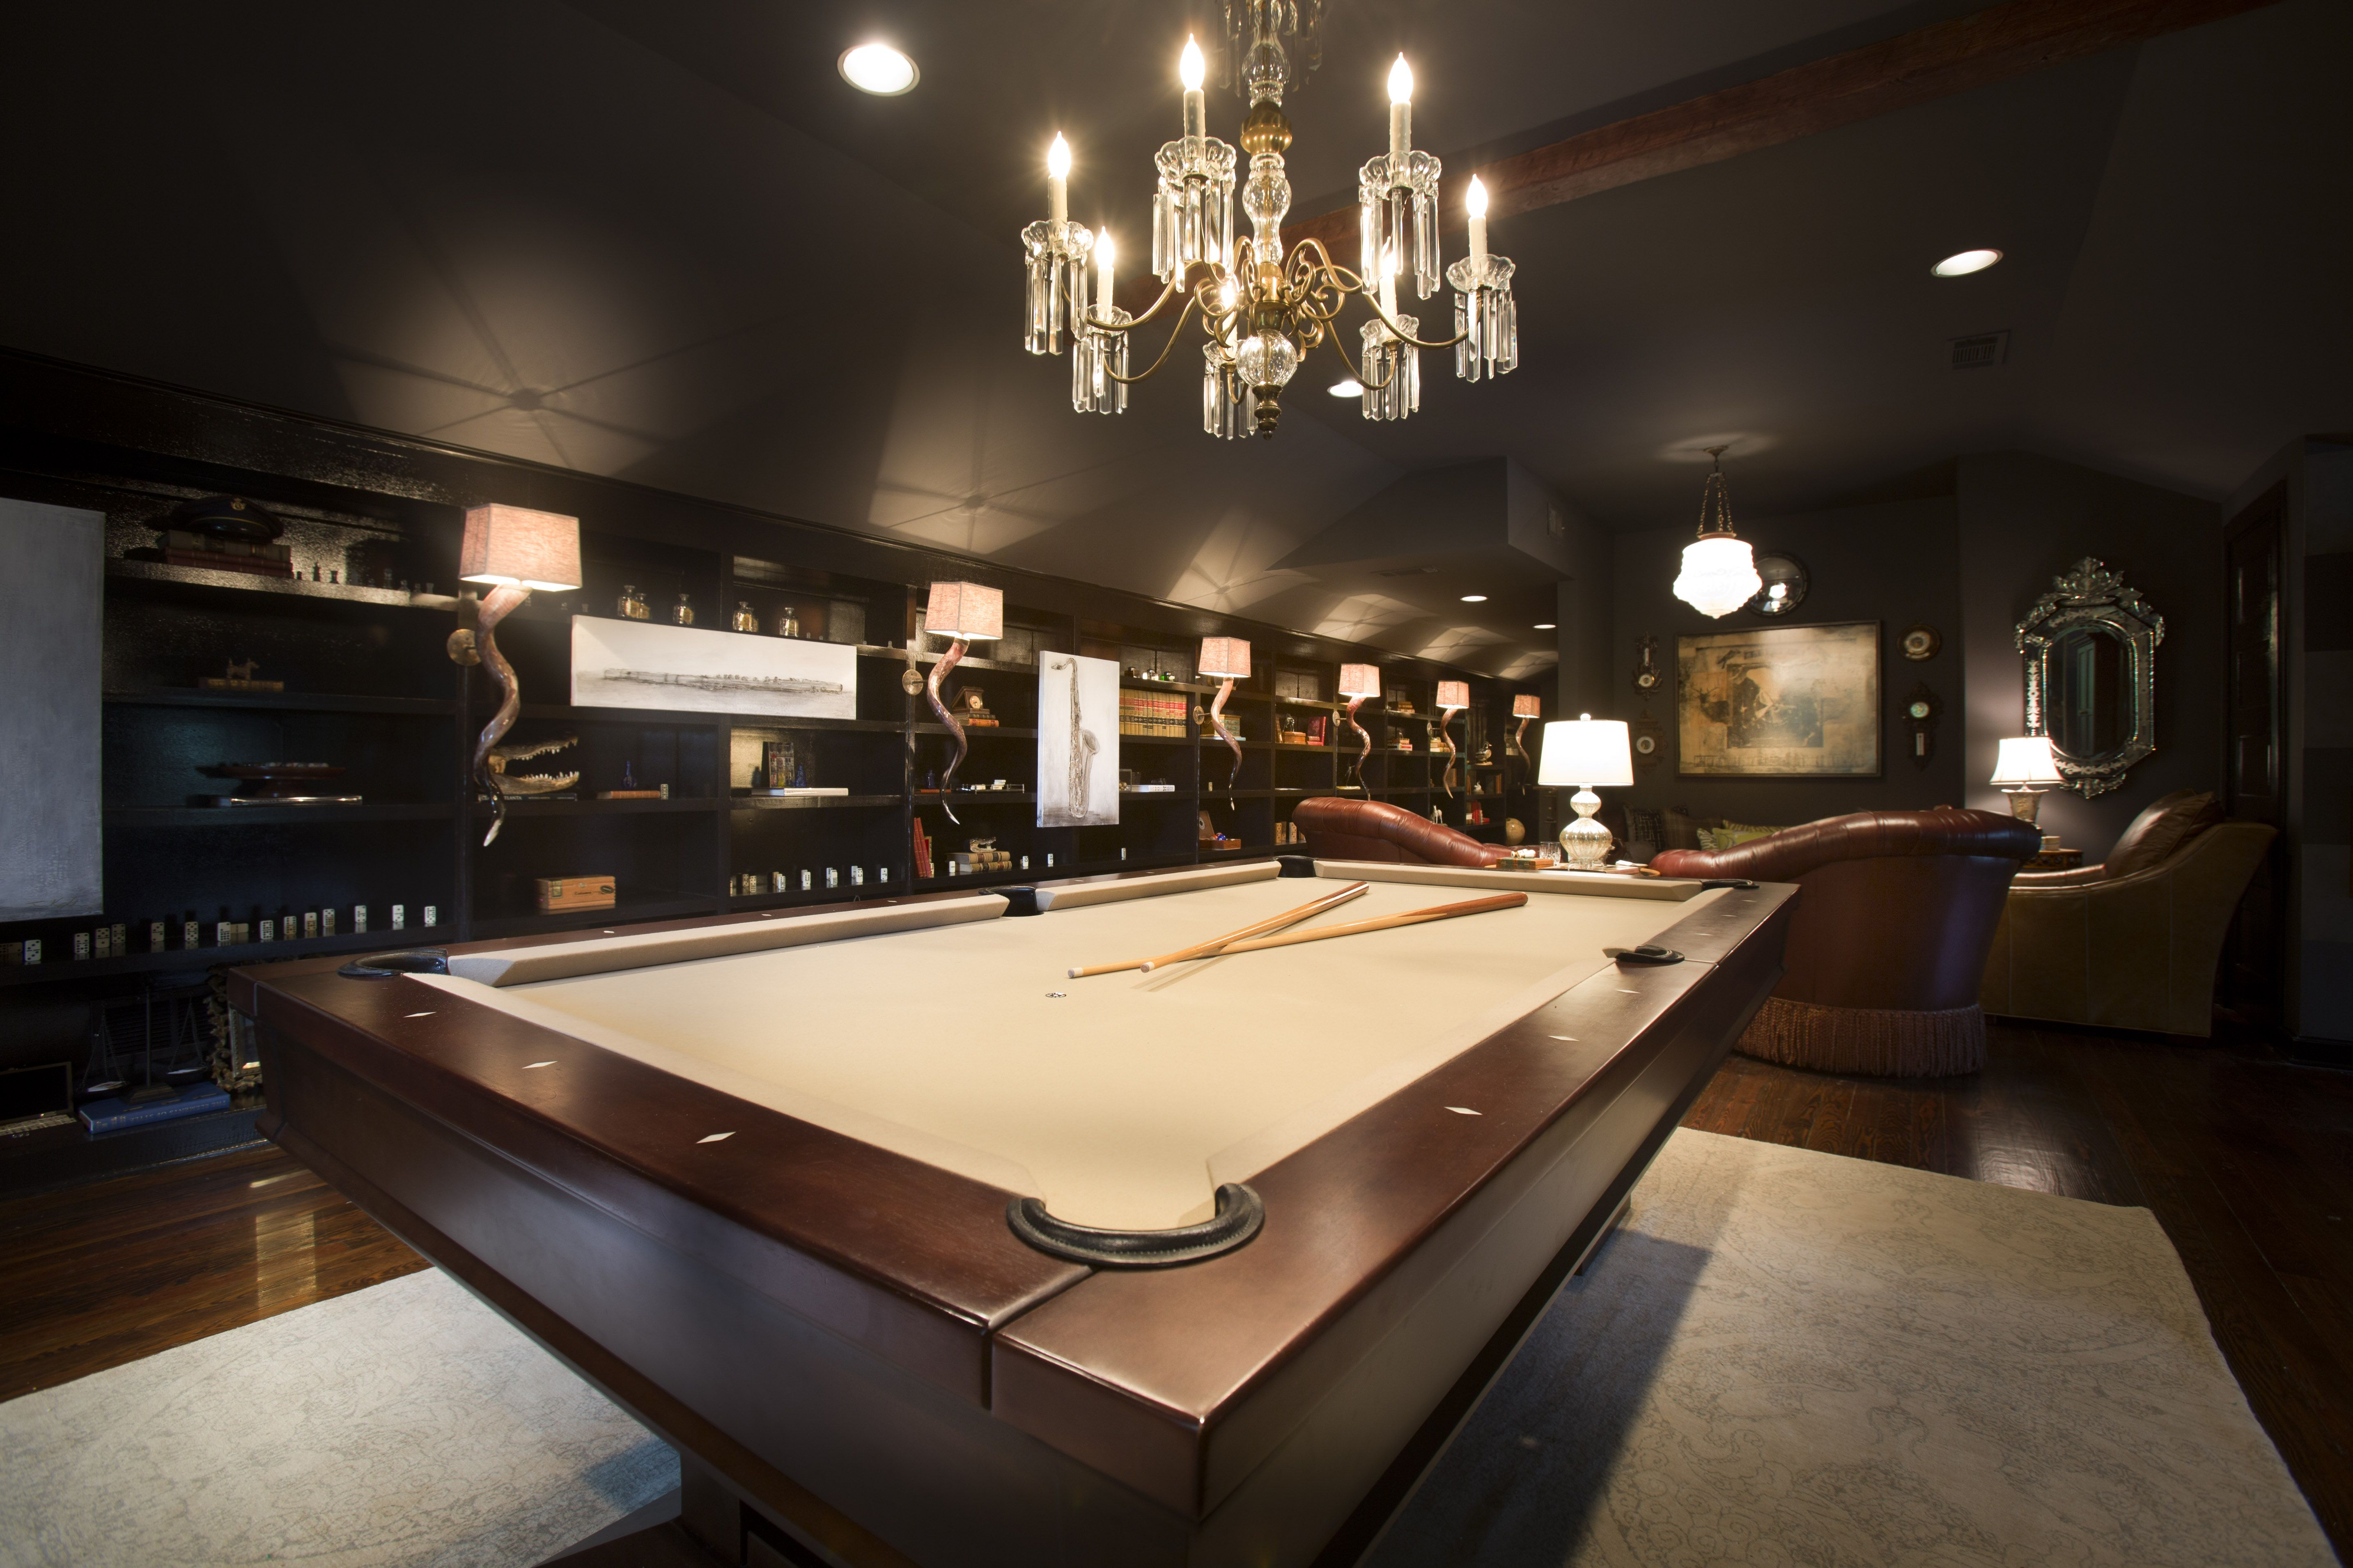 Game room kellie griffin interiors knollwood 2012 - Home game room ideas ...